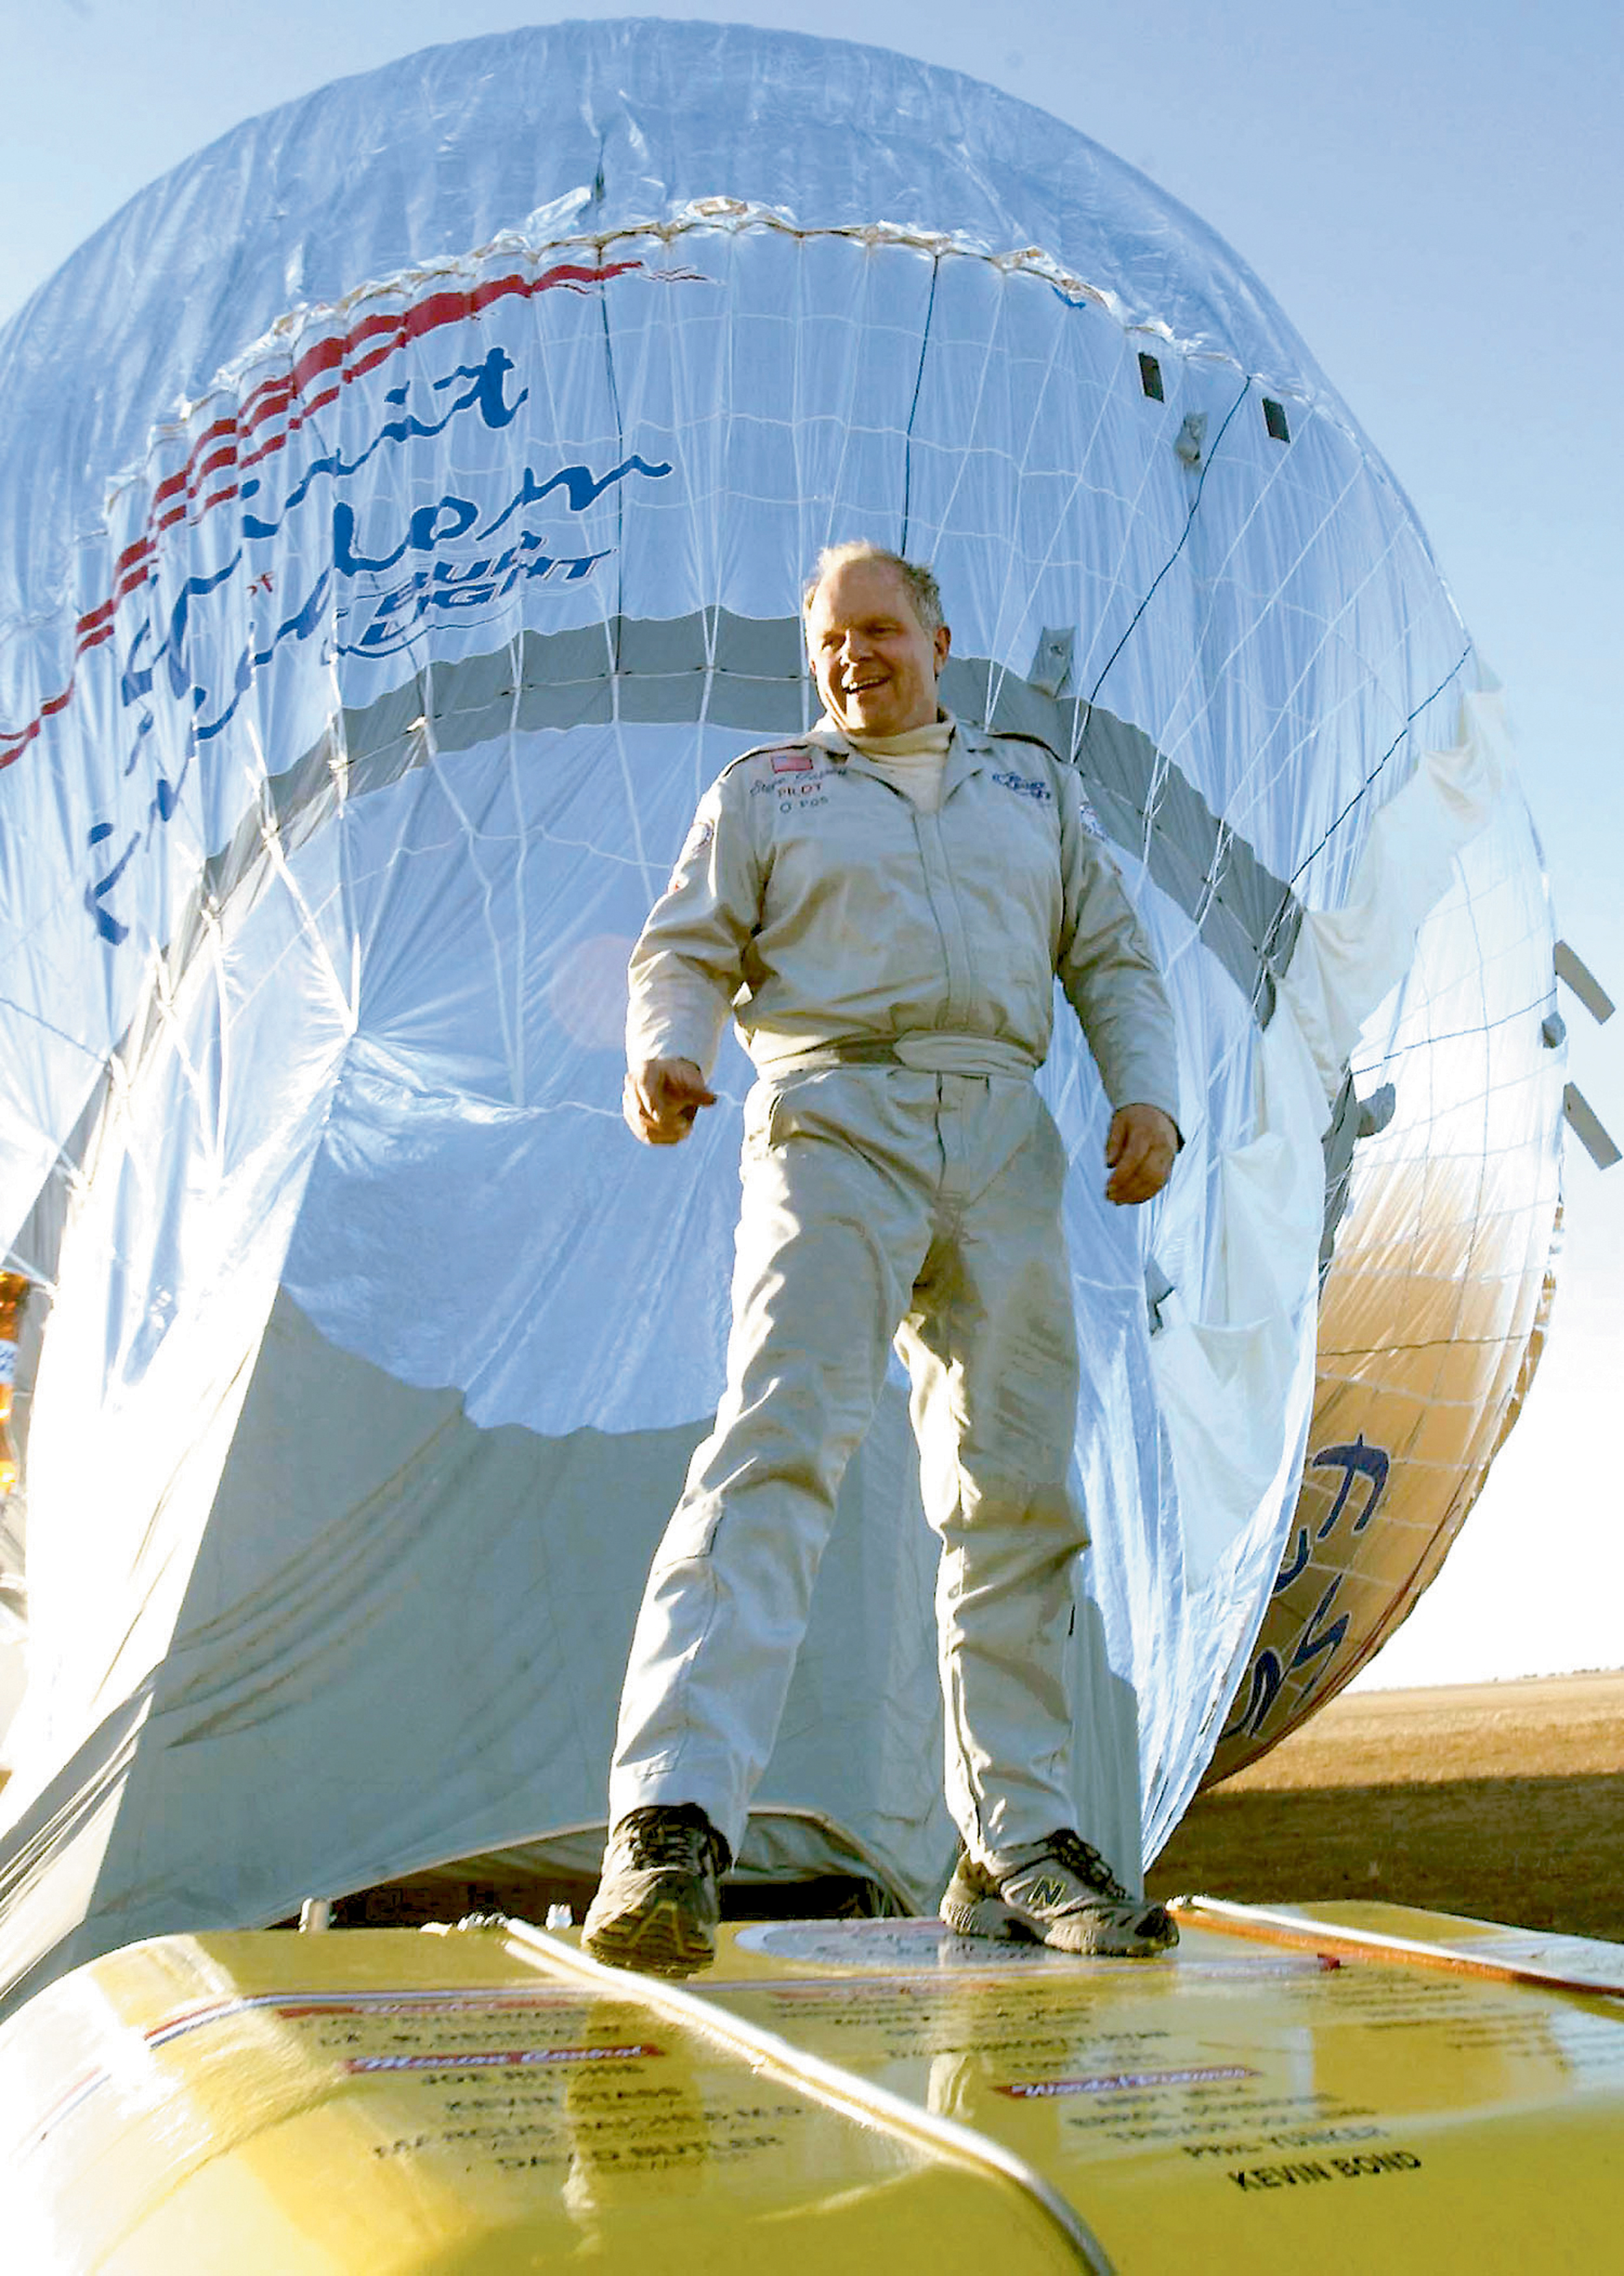 "Steve Fossett: Always ""Scouting for New Adventures"" Part 2"